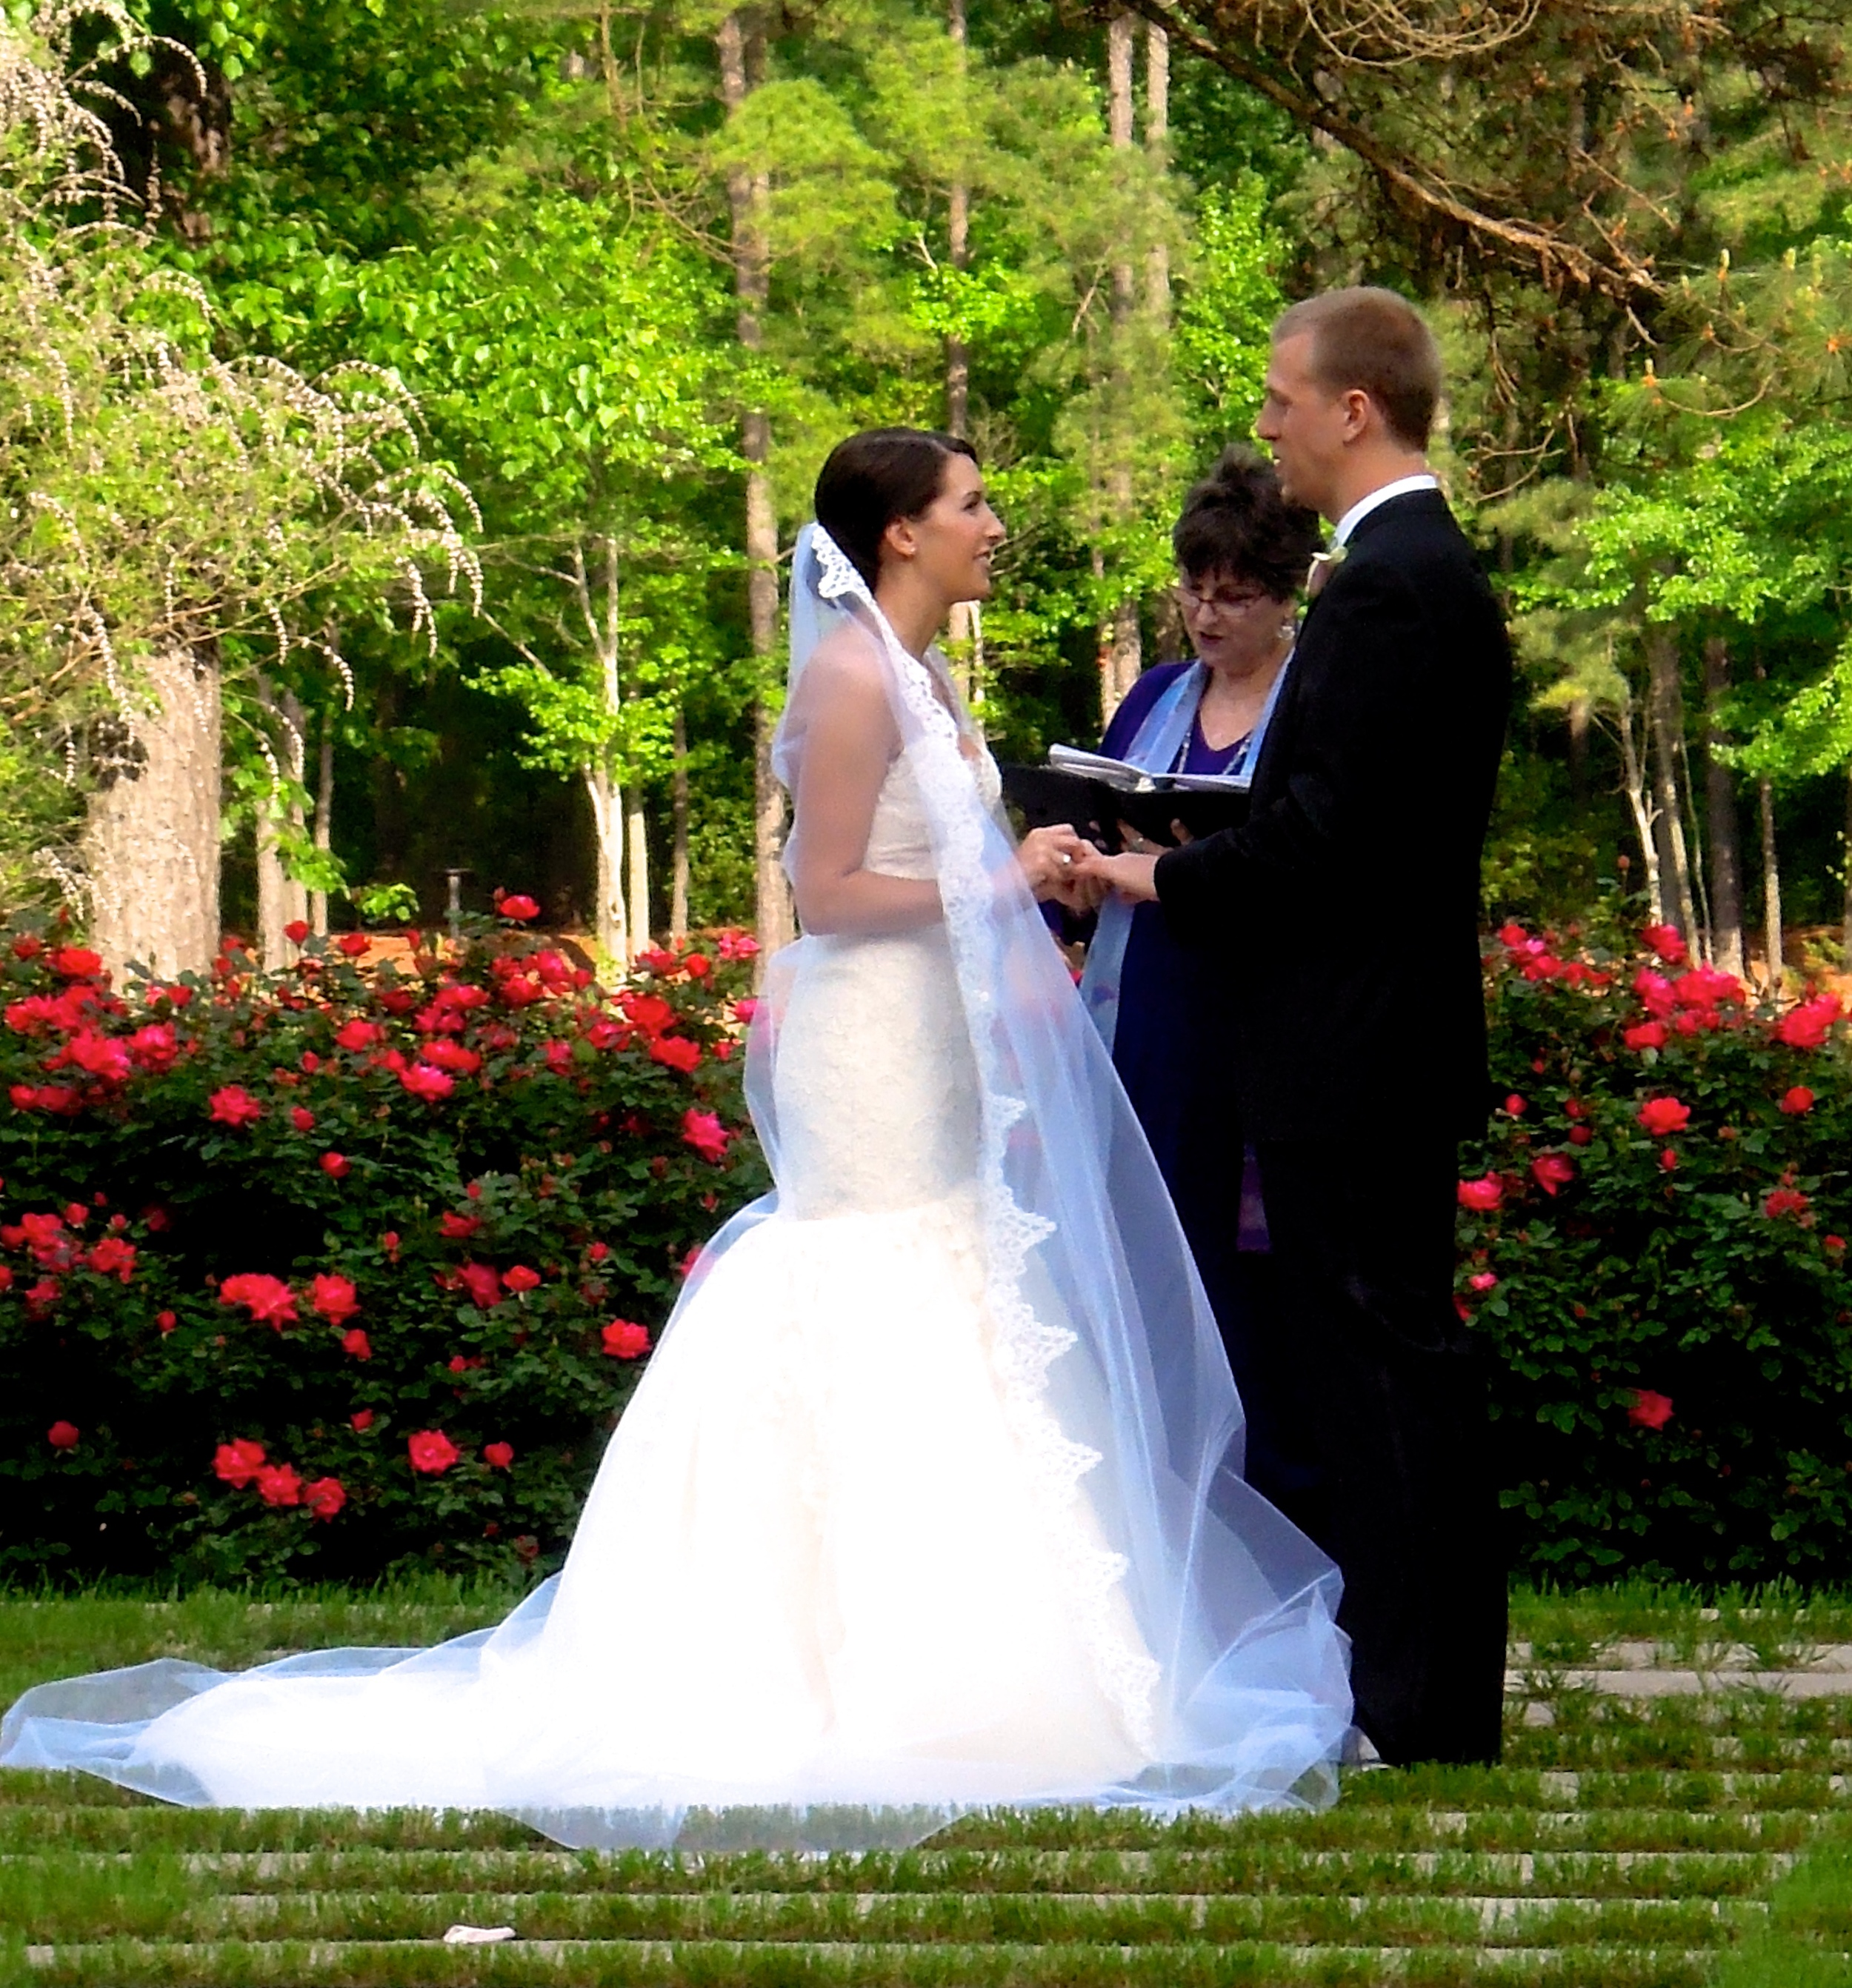 The Umstead Hotel and Spa Wedding in the Courtyard, Cary NC